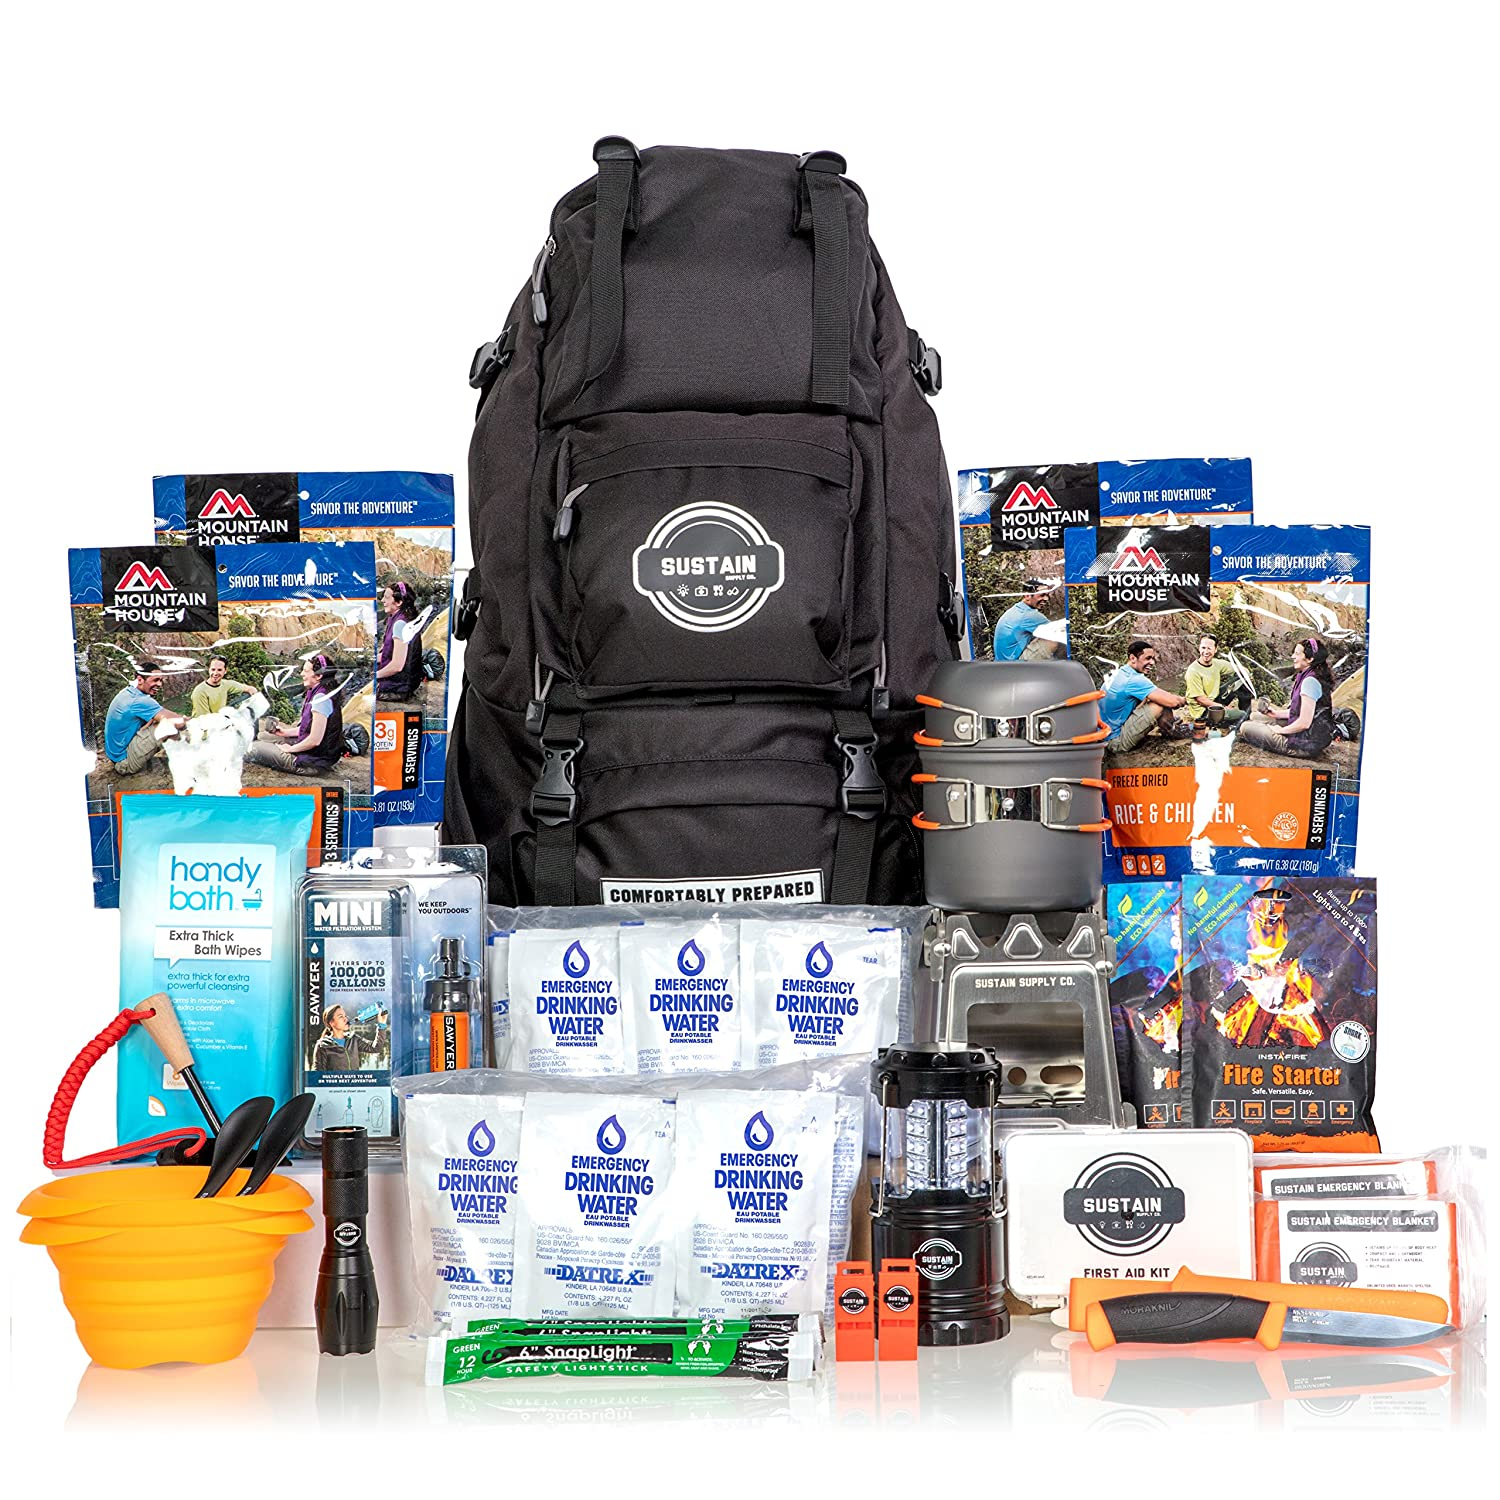 Premium Emergency Survival Bag/Kit – Be Equipped with 72 Hours of Disaster Preparedness Supplies for 2 People Sustain Supply Co. 9-08400